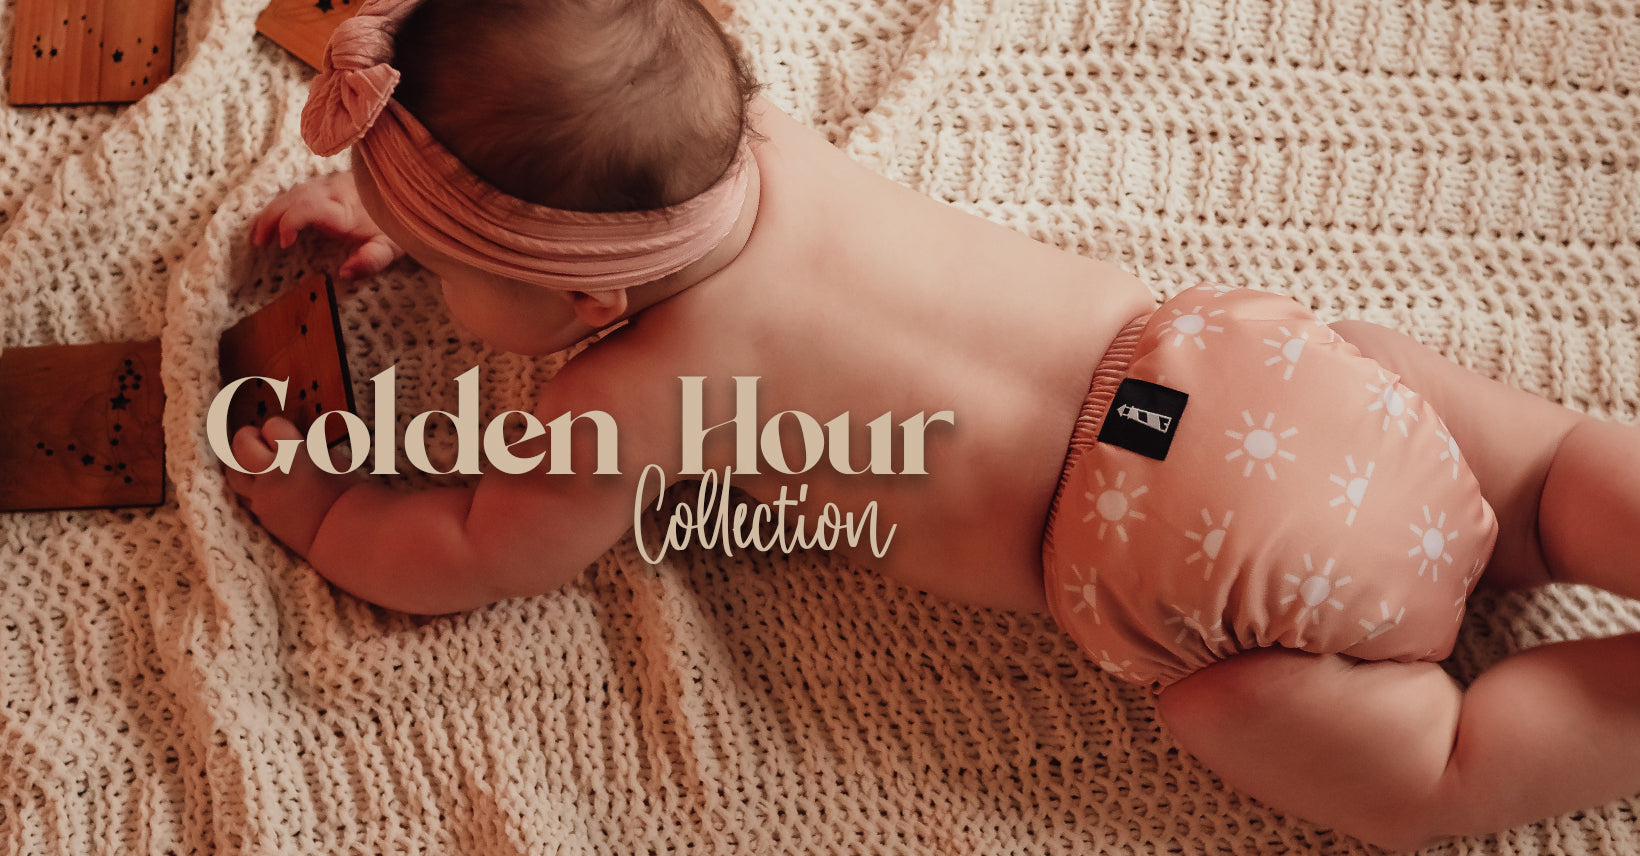 The Golden Hour Collection Lighthouse Kids Company